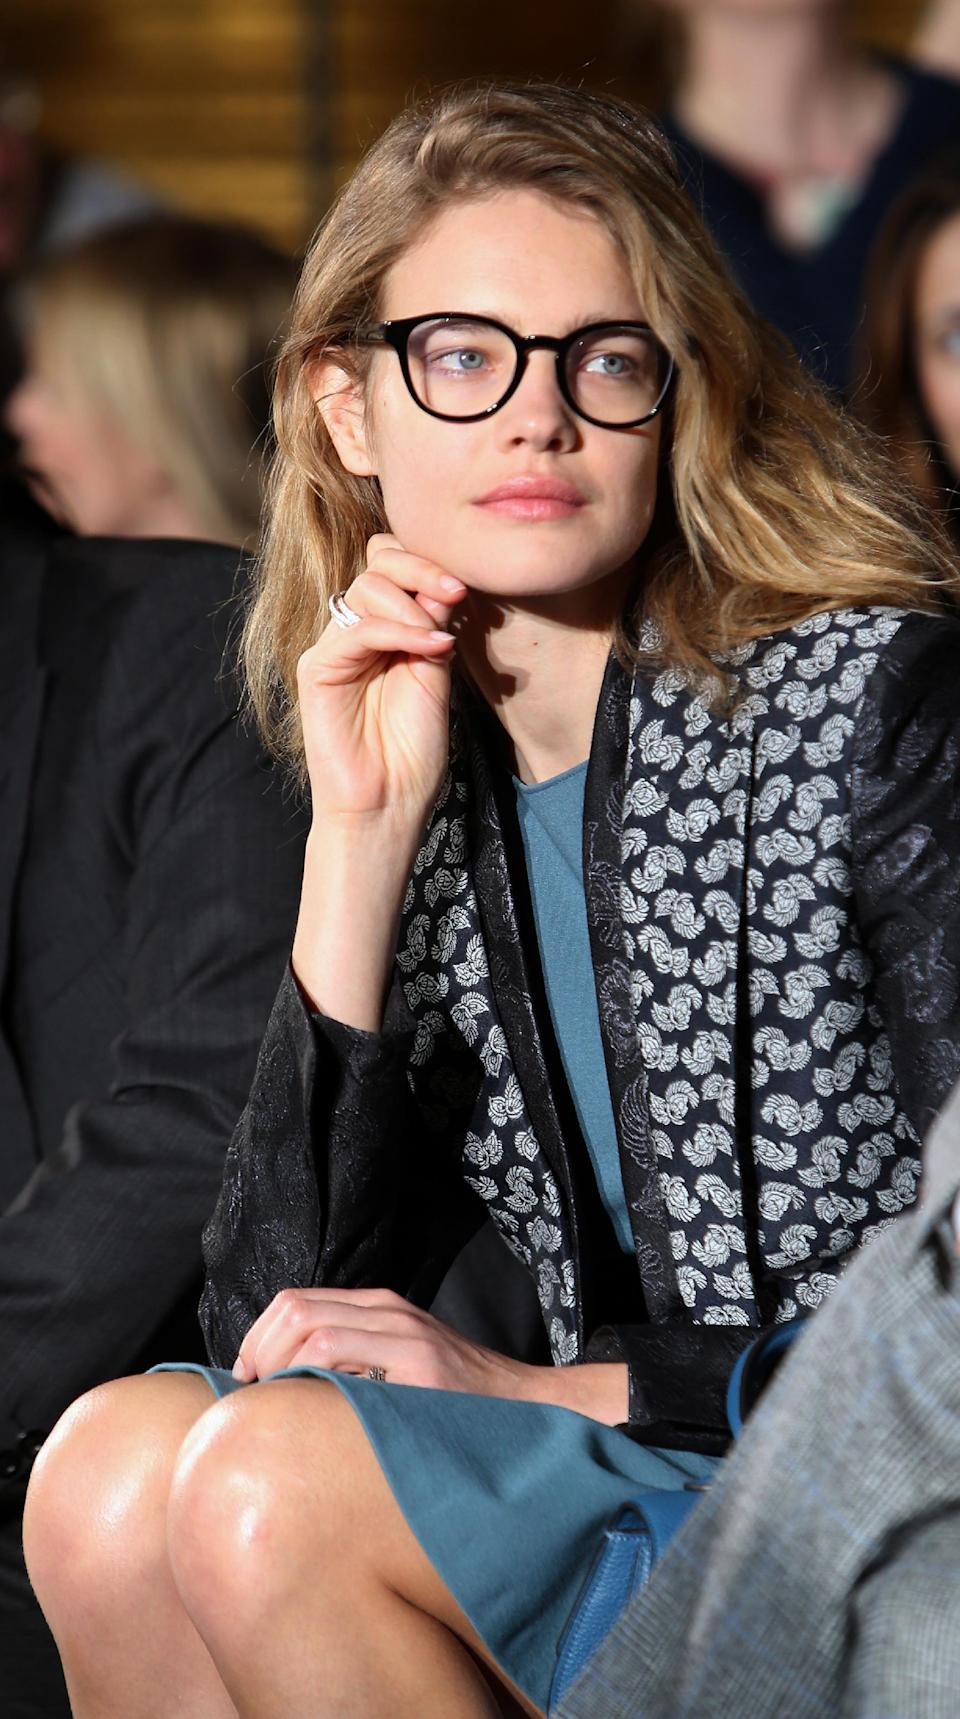 Natalia Vodianova watches fashion designer Stella McCartney's Fall/Winter 2013-2014 ready to wear collection, in Paris, Monday, March, 4, 2013. (AP Photo/Thibault Camus)